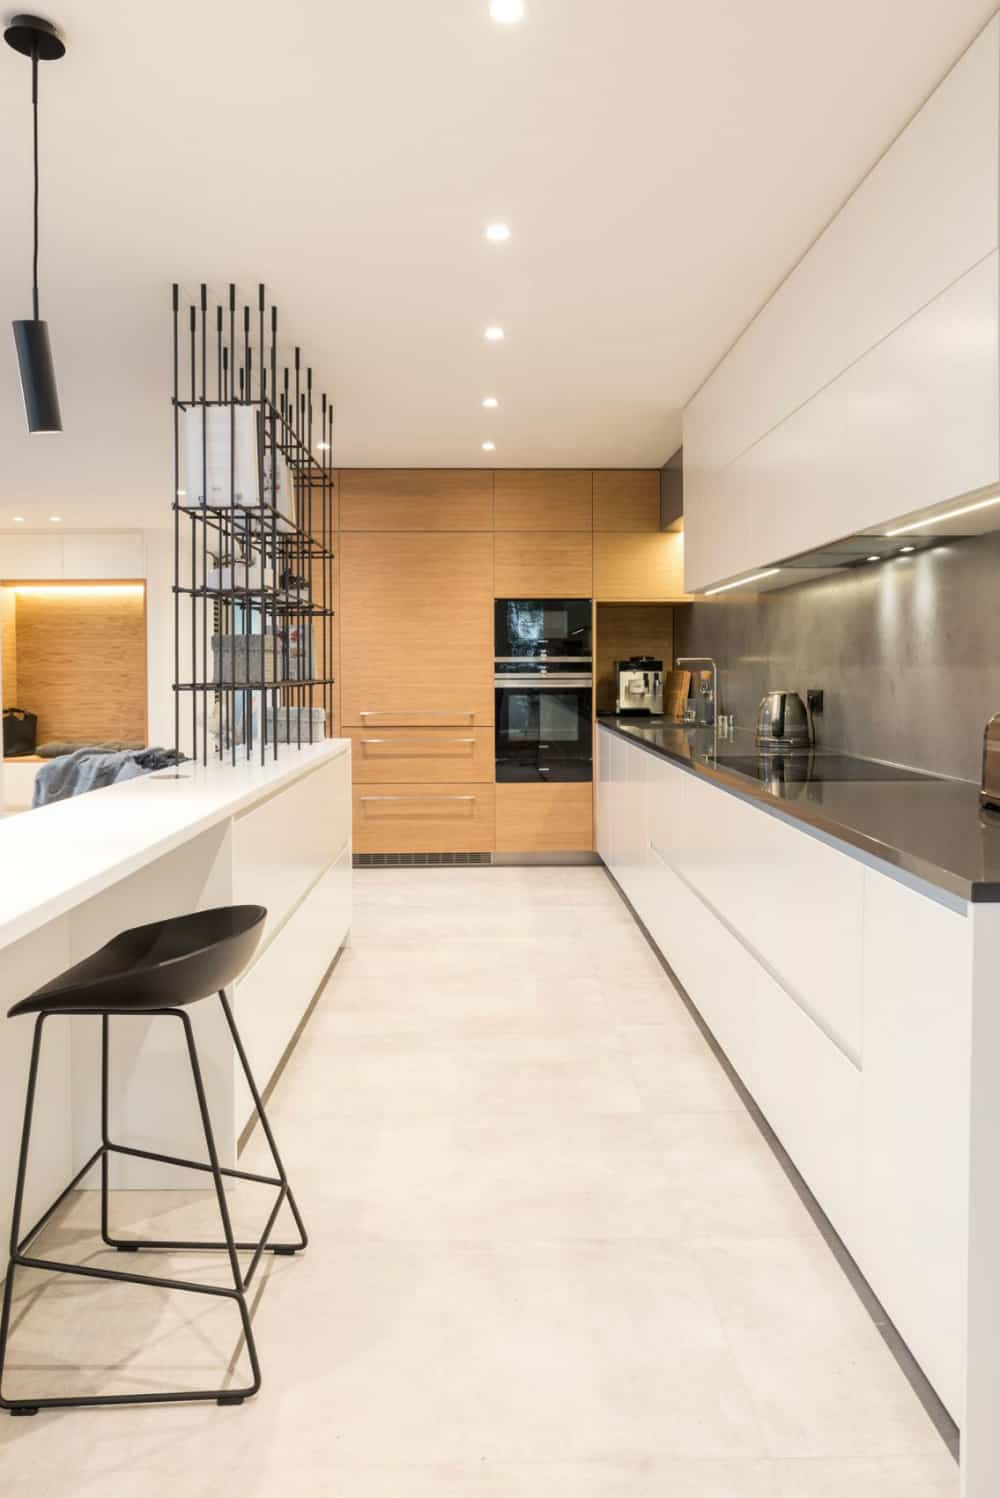 Kitchen and living zone stand separate thanks to the metallic shelving